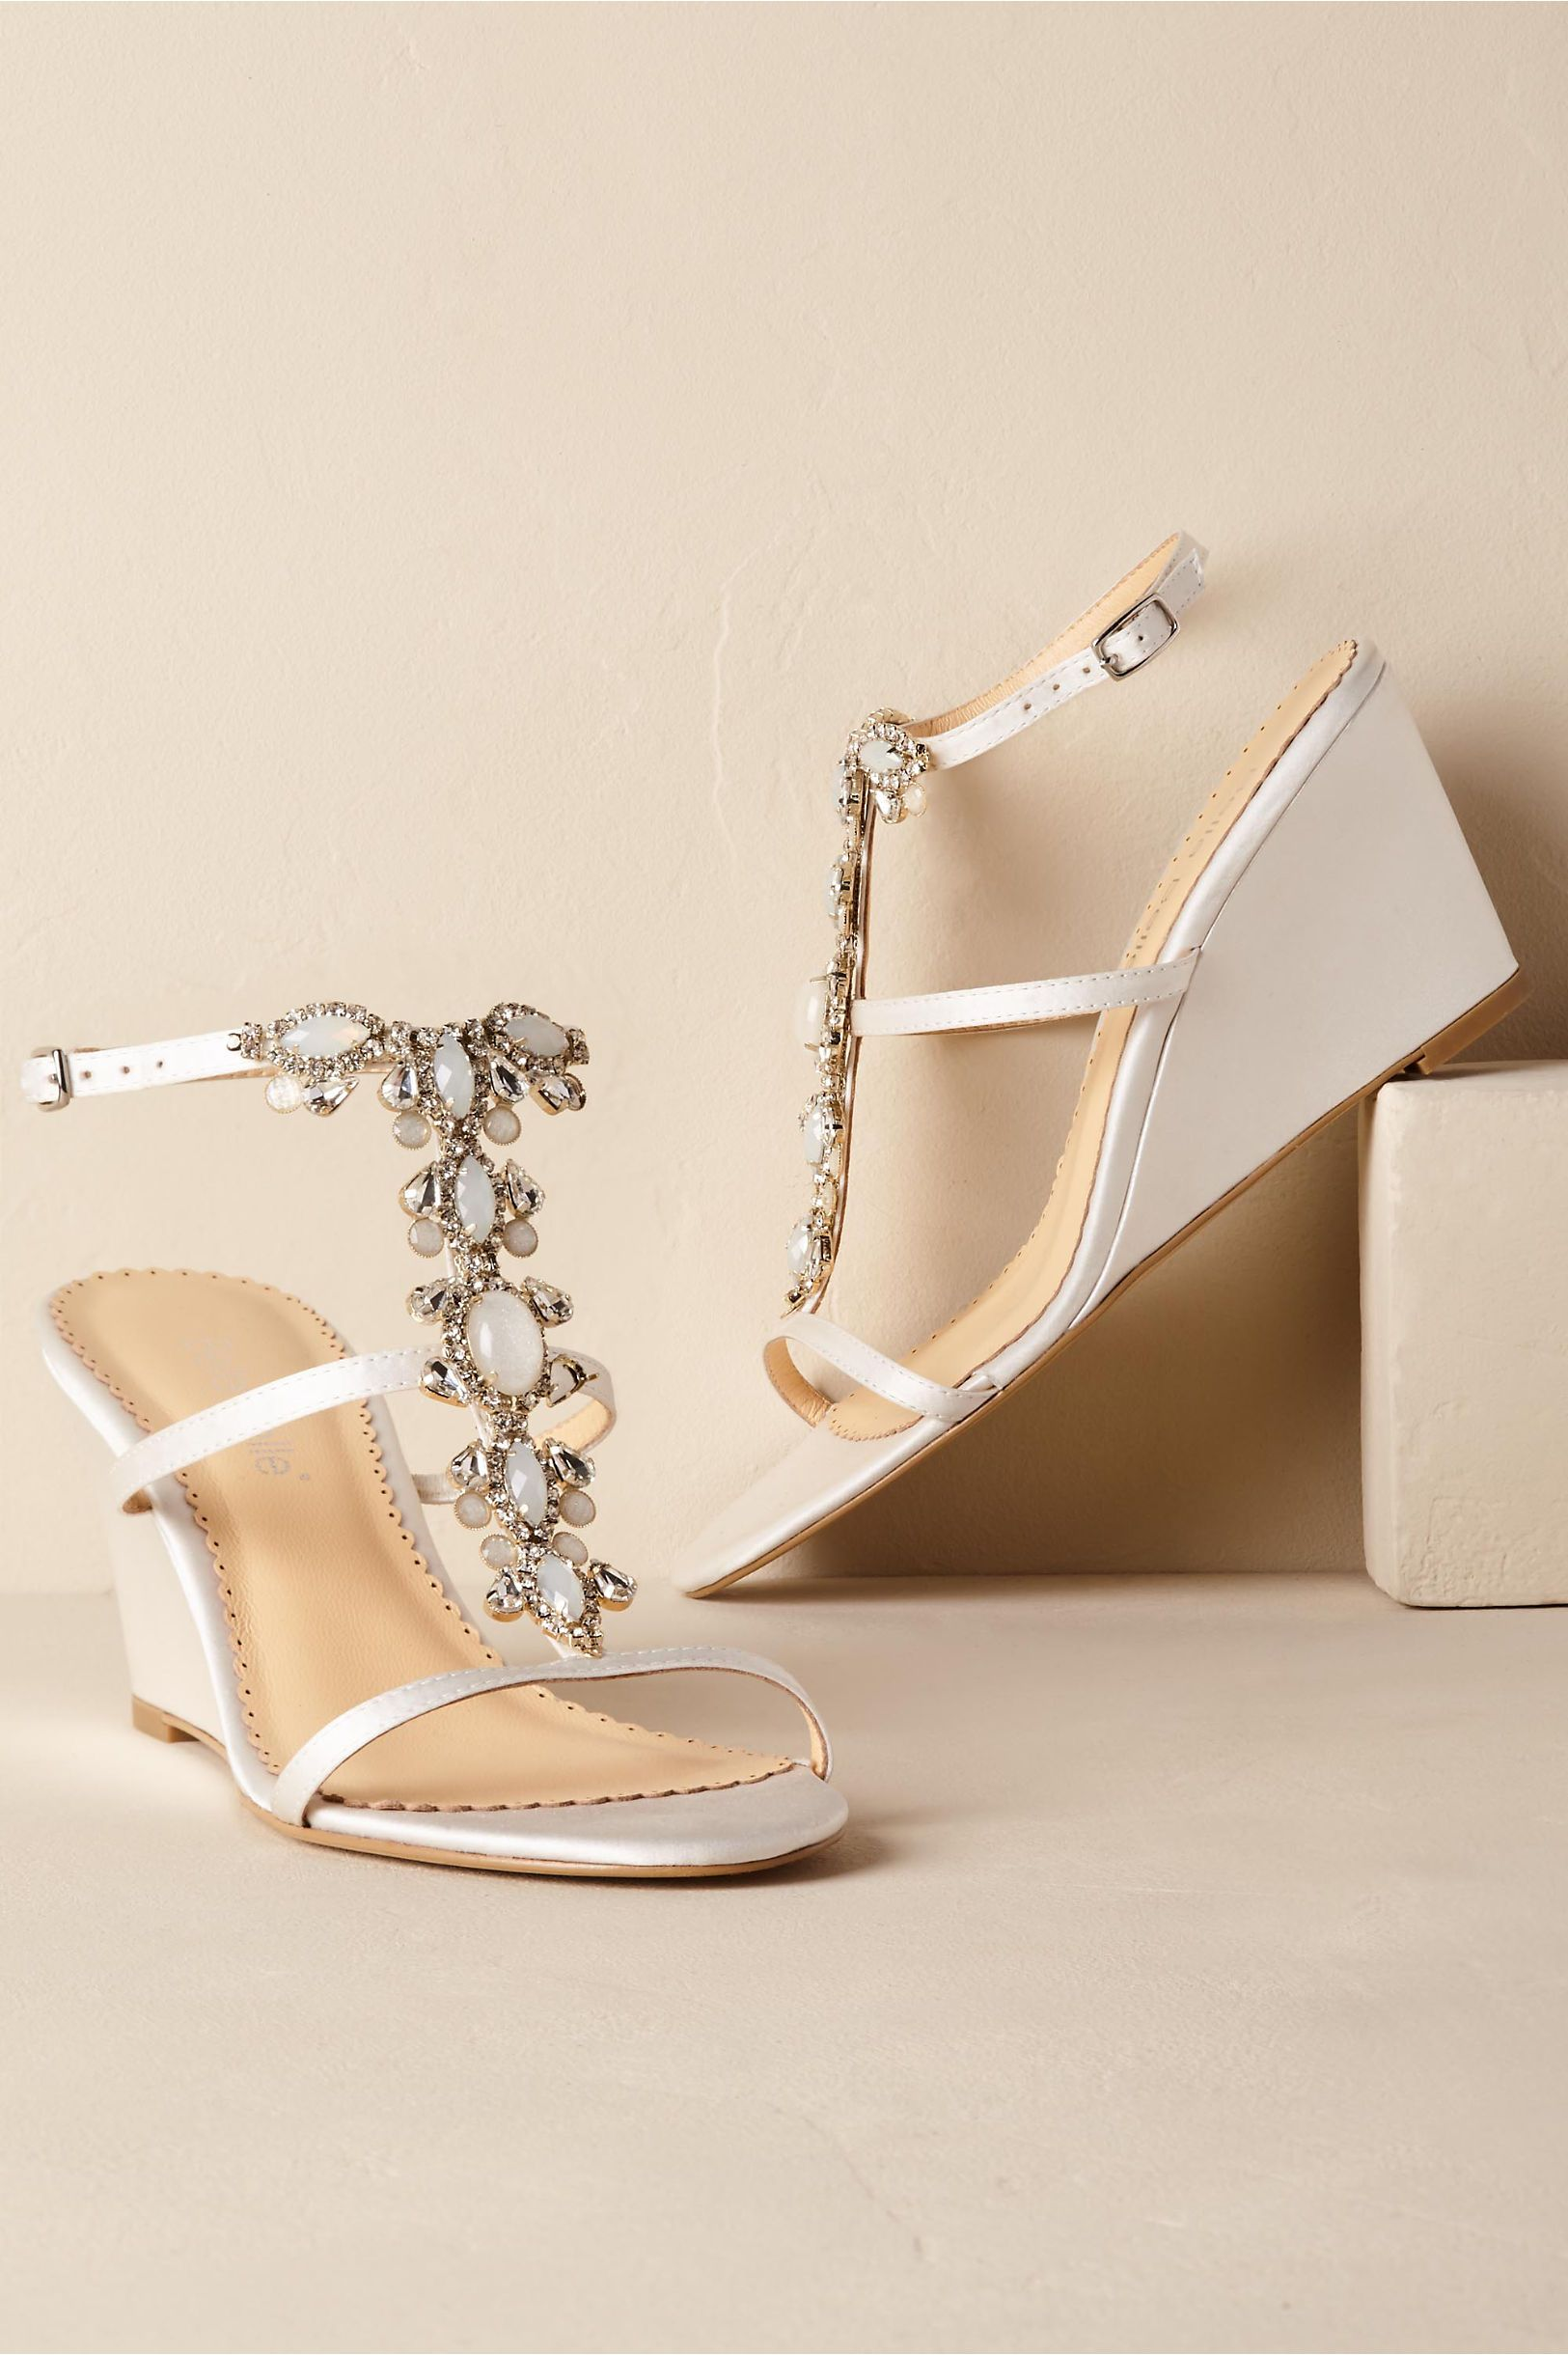 2a997951d1d3 ... wedding day look! Courtesy of BHLDN . BHLDN s Bella Belle Celia Wedges  in Ivory